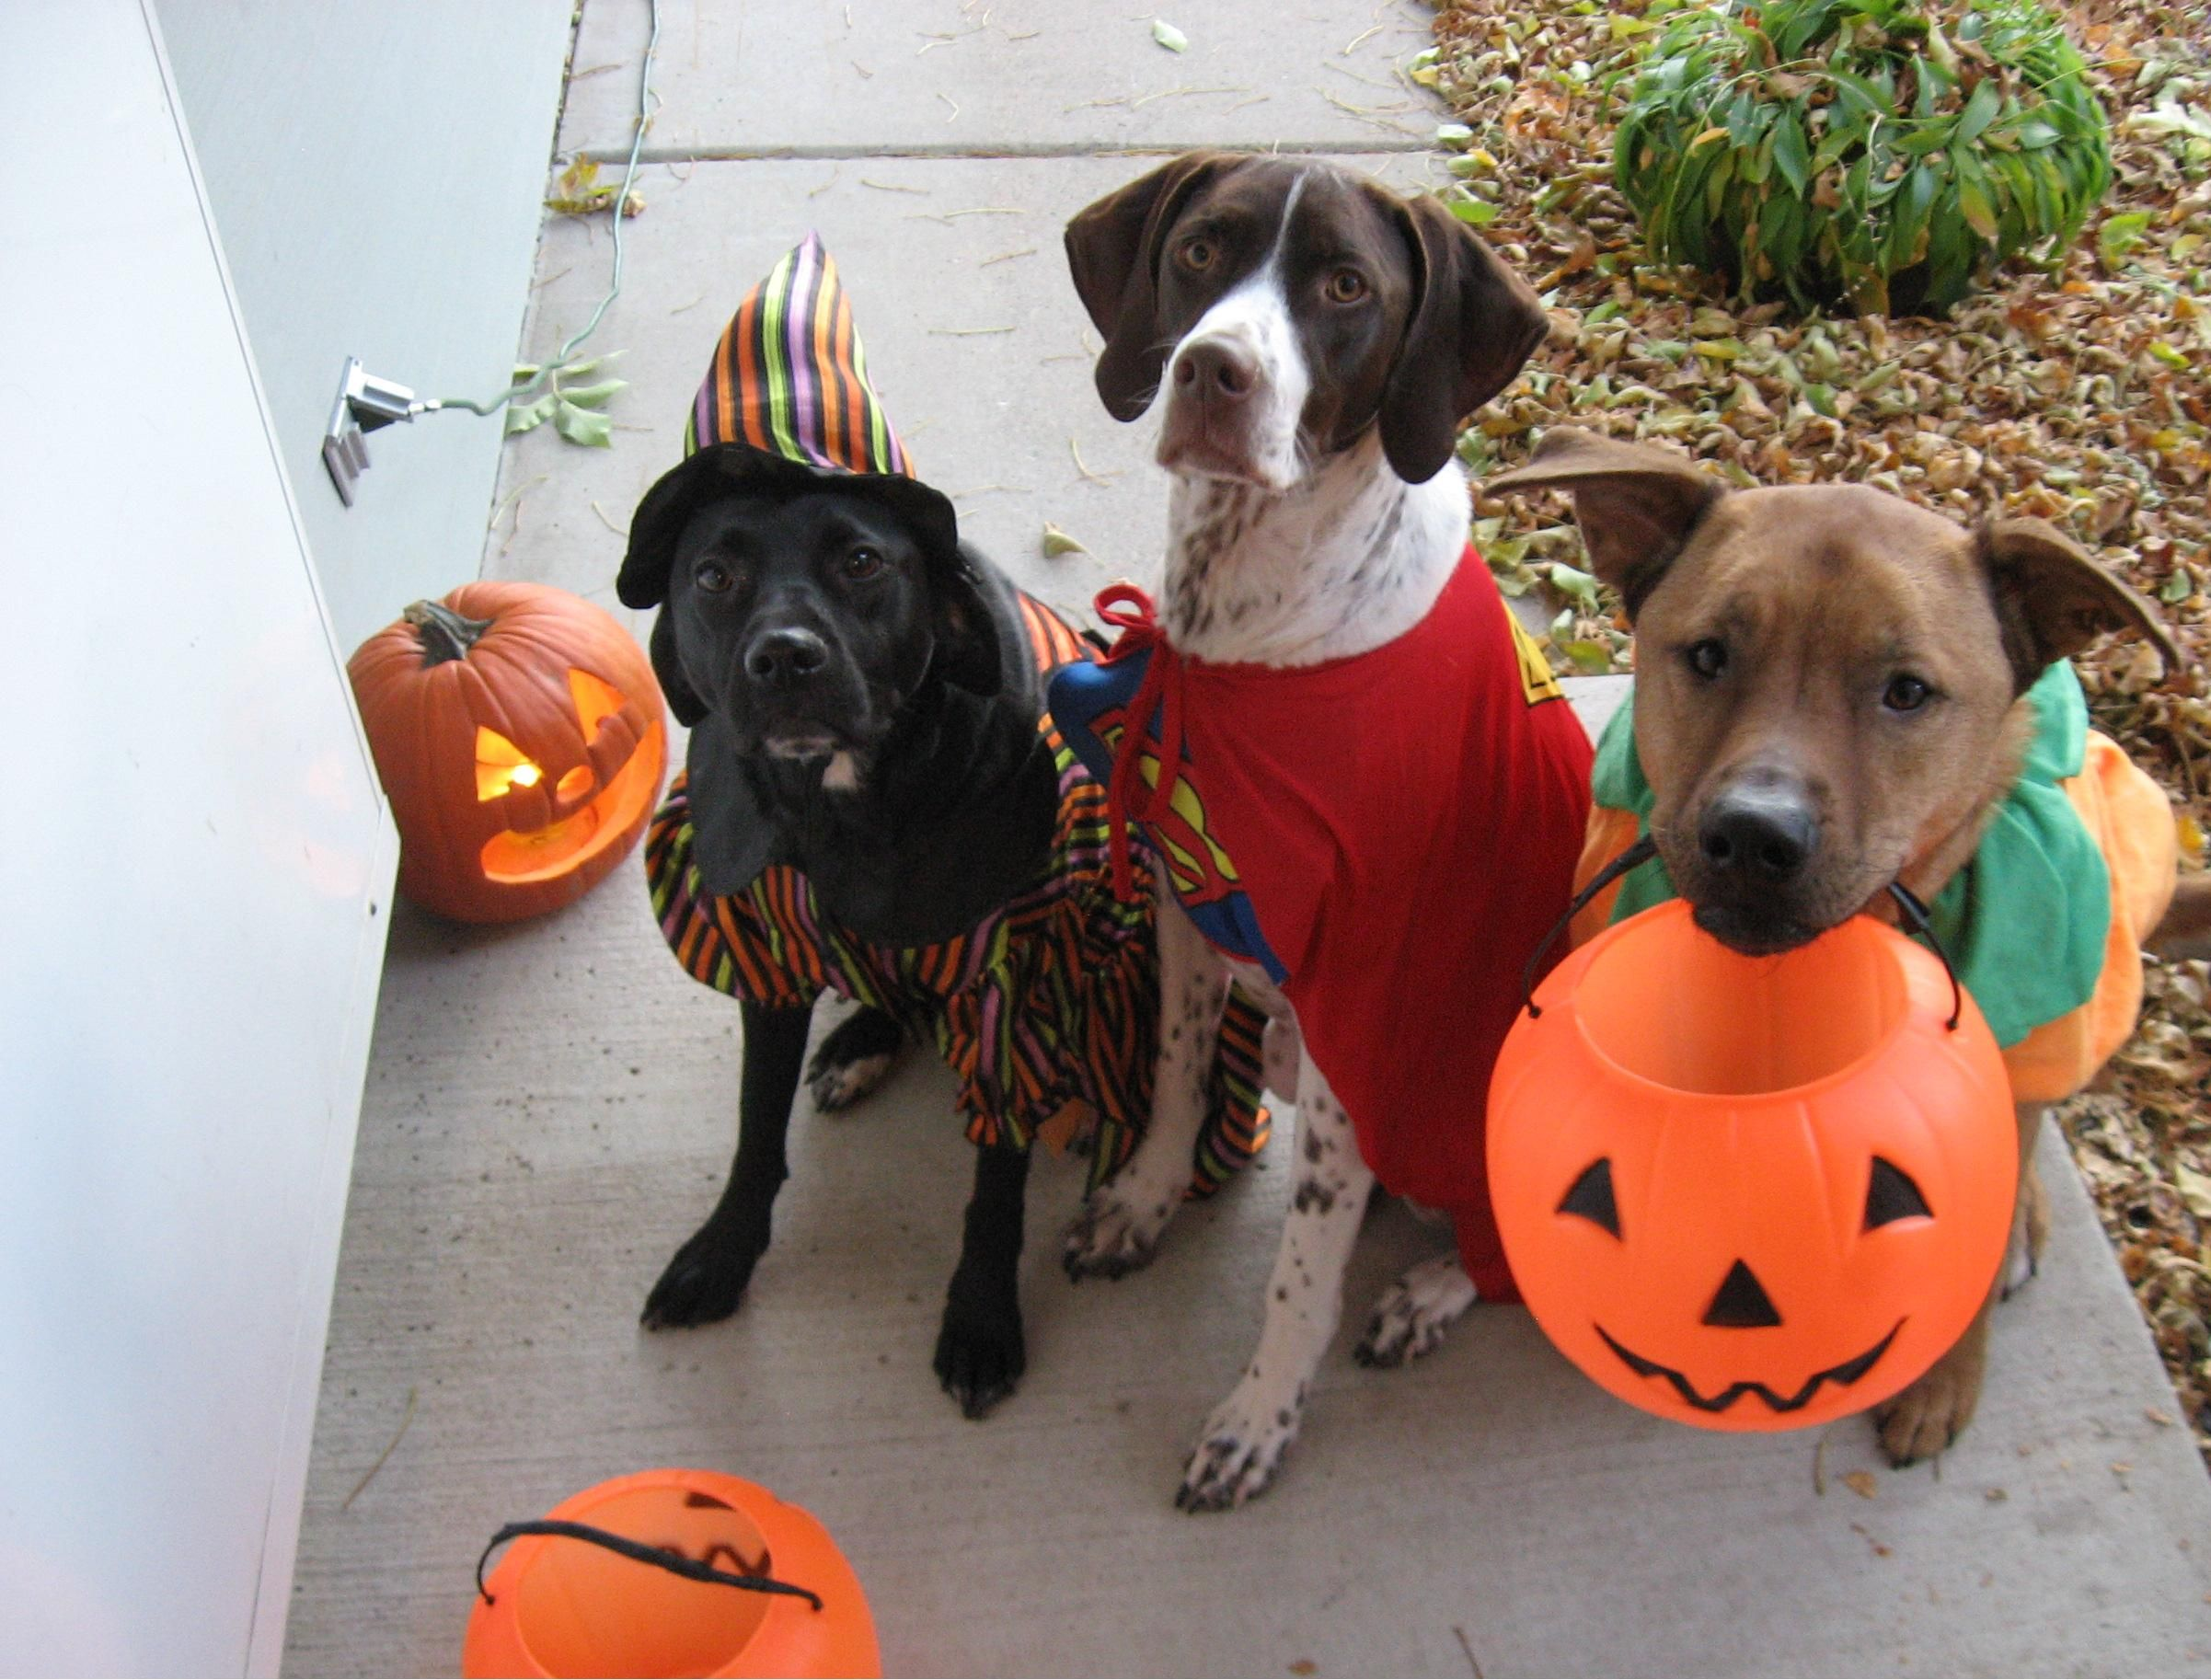 dogs in halloween costumes wallpaper - Google Search | Dogs ...